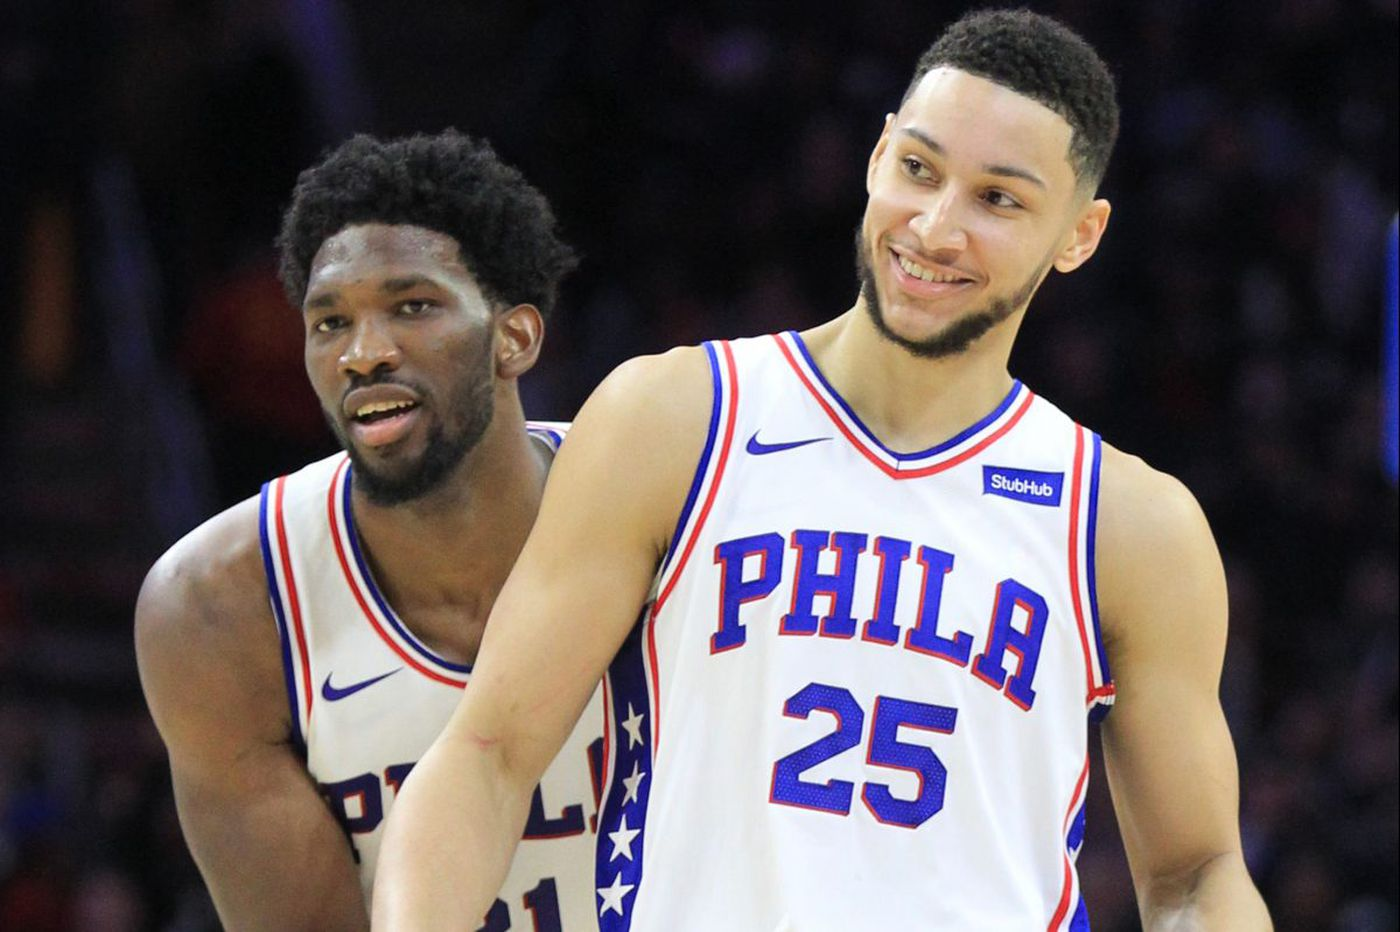 Sixers 108, Pistons 103: Joel Embiid vs. Andre Drummond fails to live up to hype